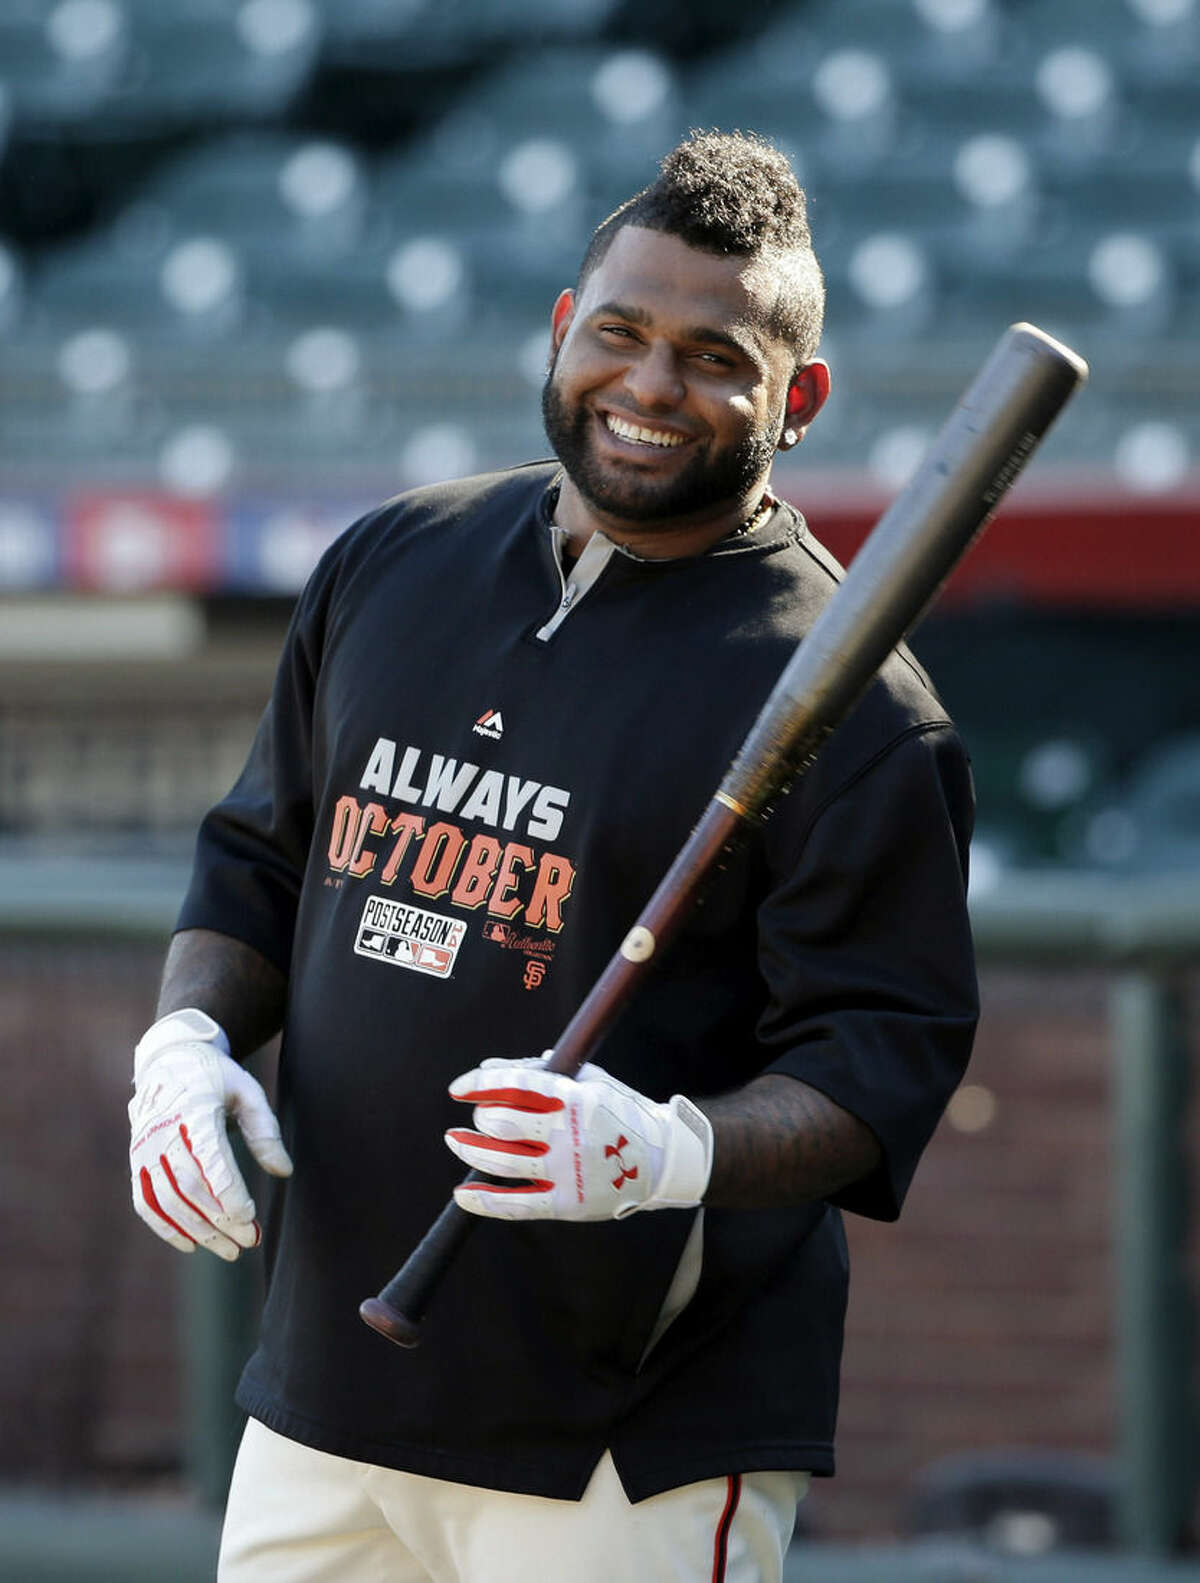 FILE - In this Oct. 18, 2014, file photo, San Francisco Giants third baseman Pablo Sandoval smiles as he takes batting practice during a baseball workout in San Francisco. Giants assistant general manager Bobby Evans says he has been given